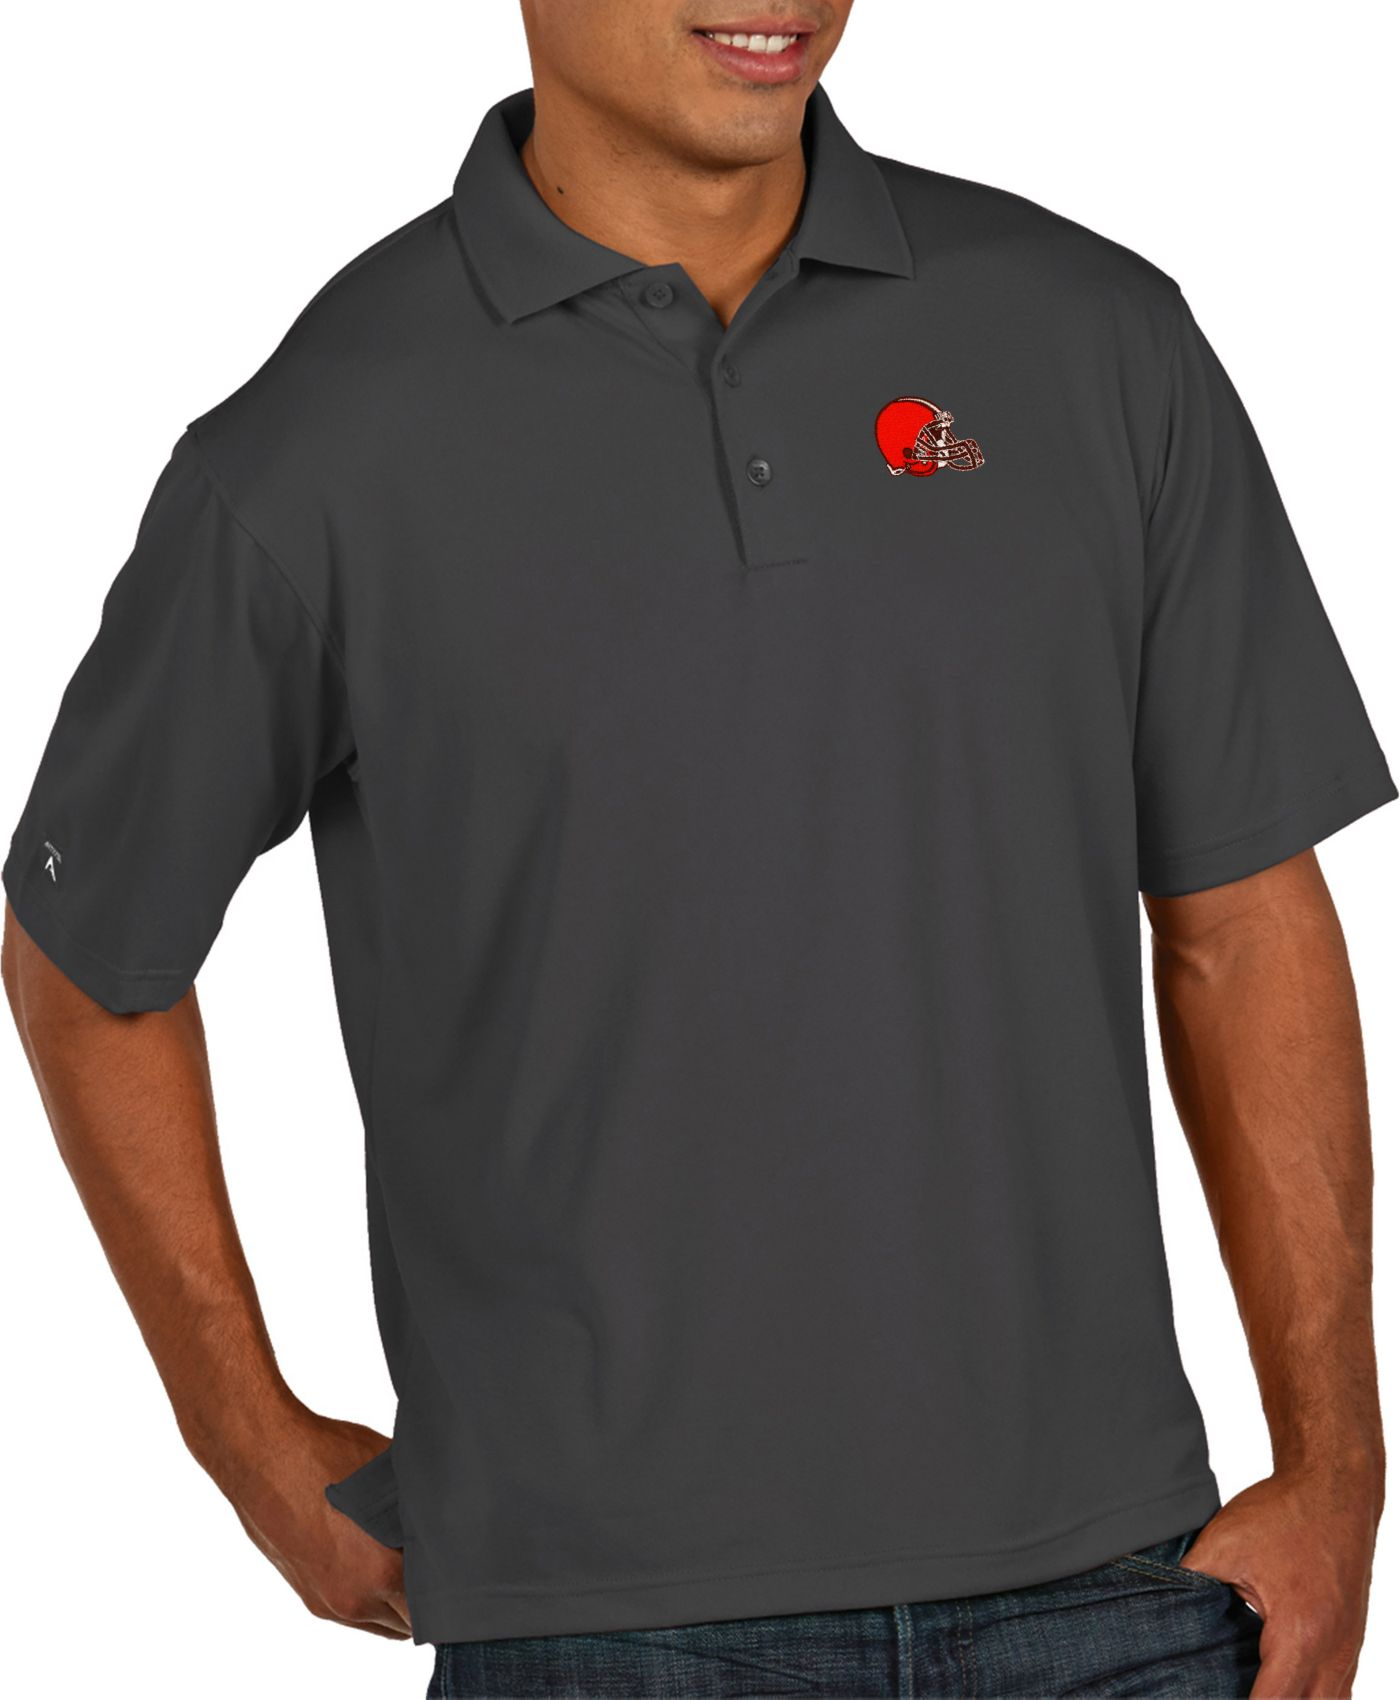 Antigua Men's Cleveland Browns Pique Xtra-Lite Performance Smoke Polo